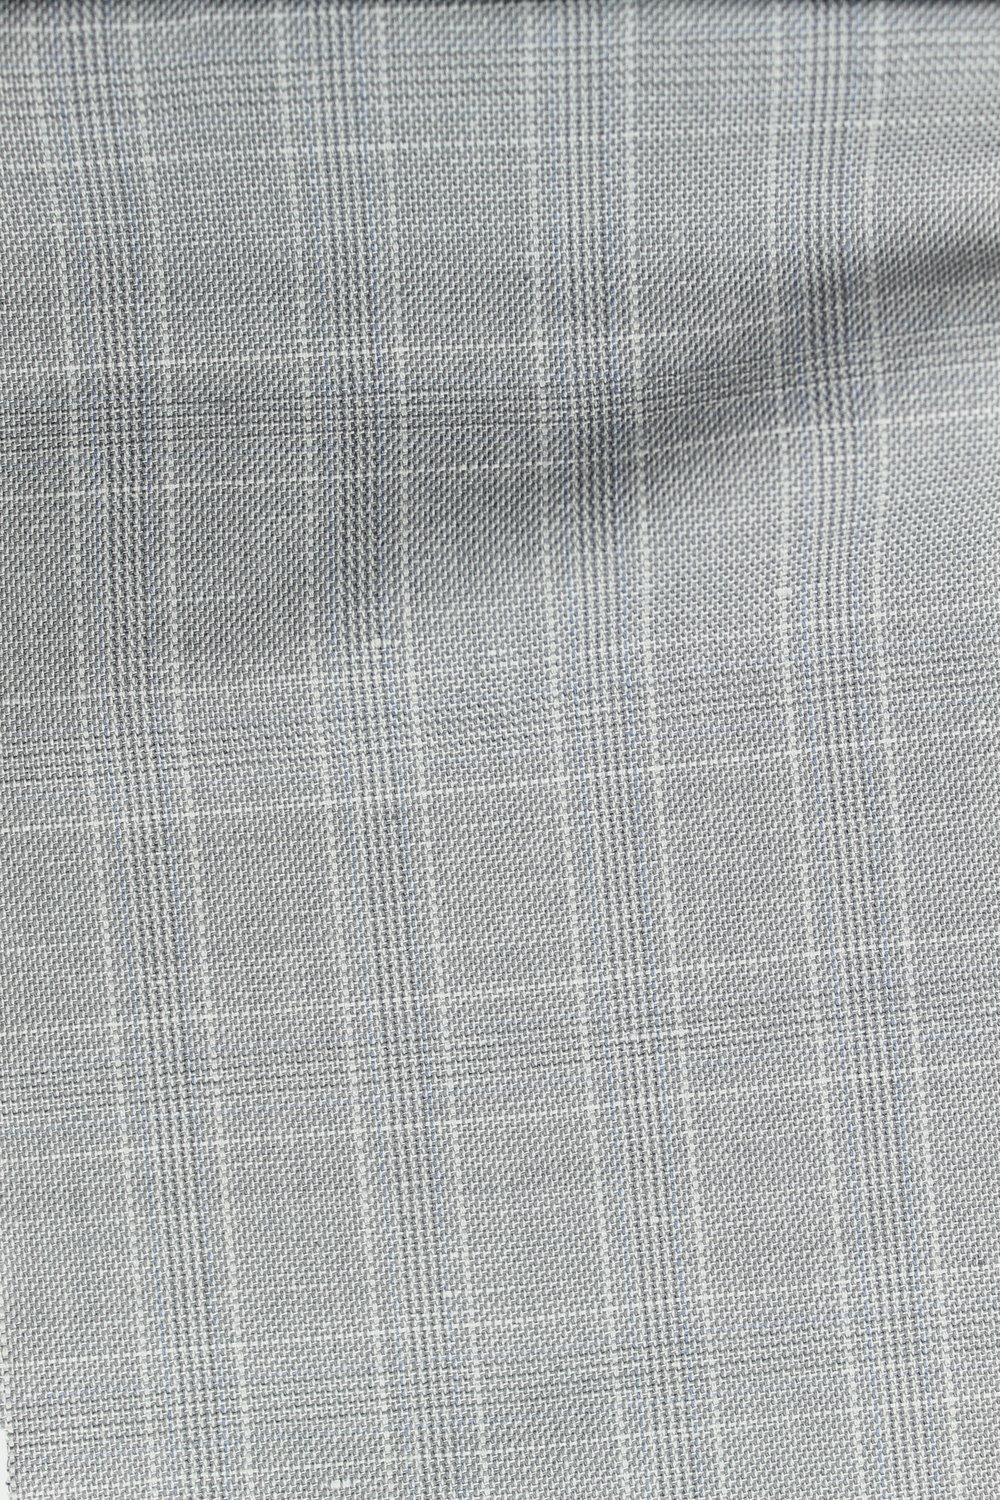 L118 Grey Checked Cotton Twill.JPG